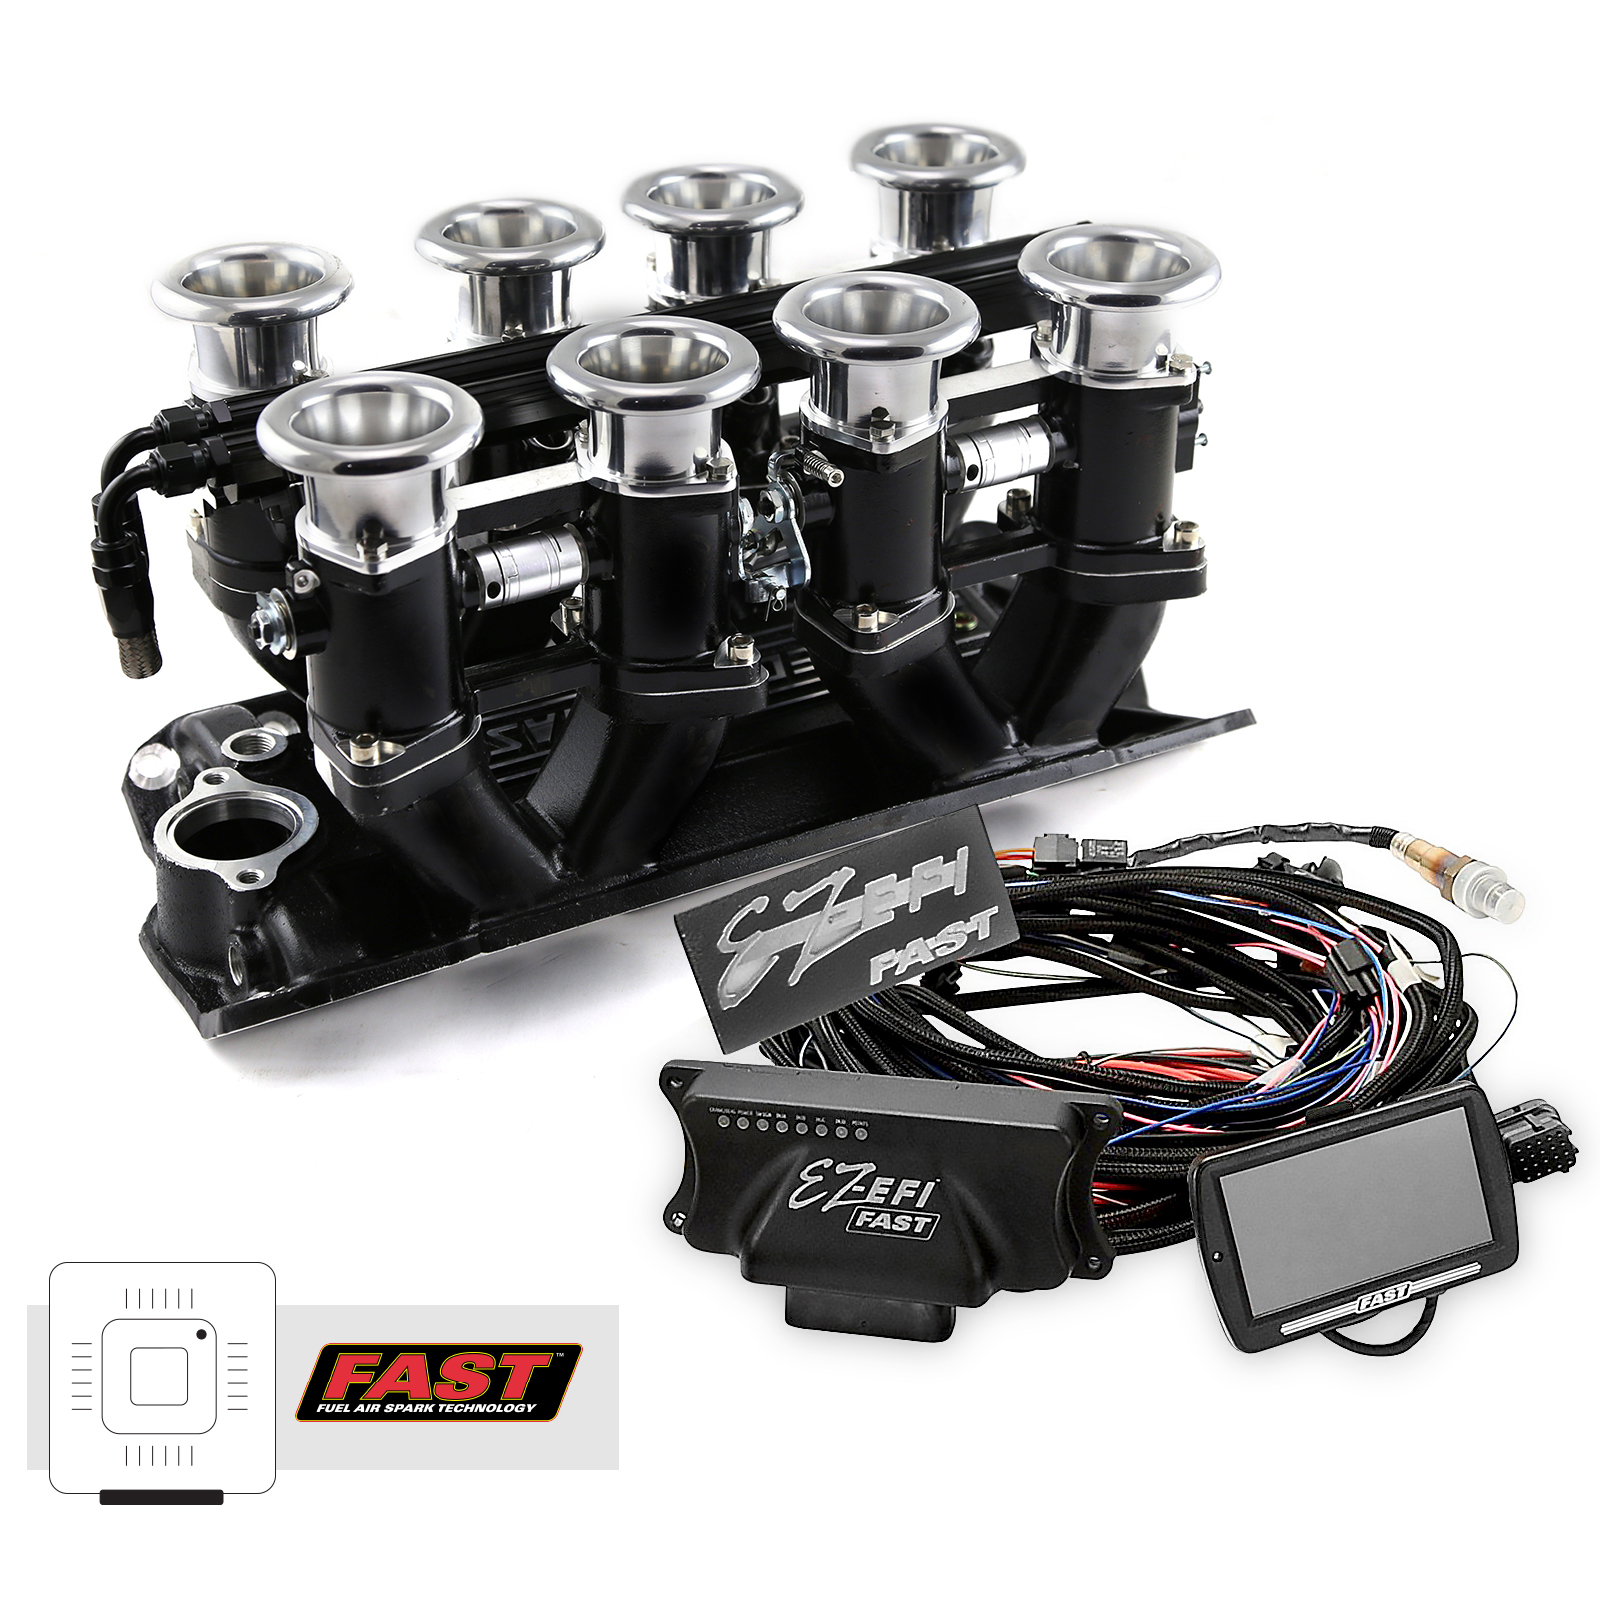 Chevy SBC 350 Downdraft + FAST EZ-EFI 2.0 Fuel Injection System - Black